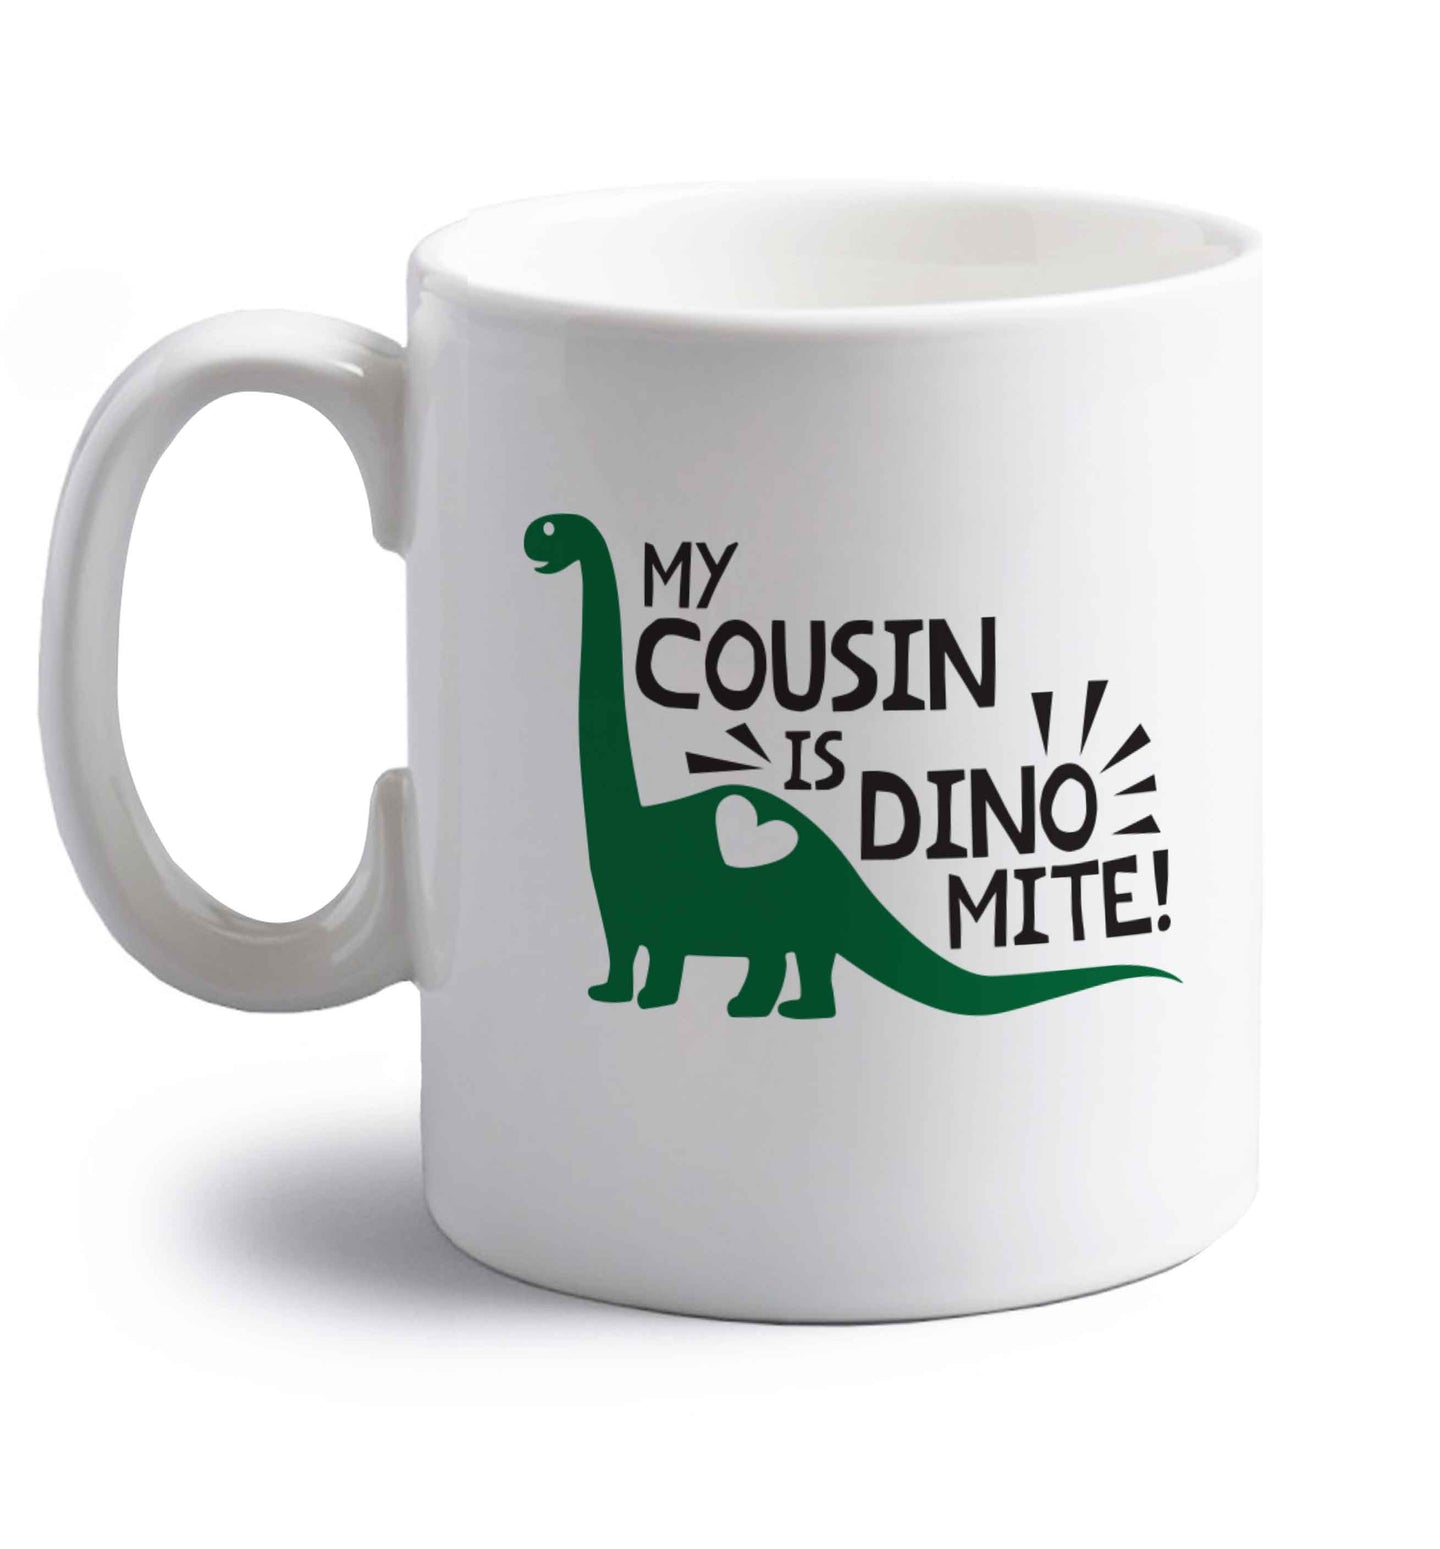 My cousin is dinomite! right handed white ceramic mug